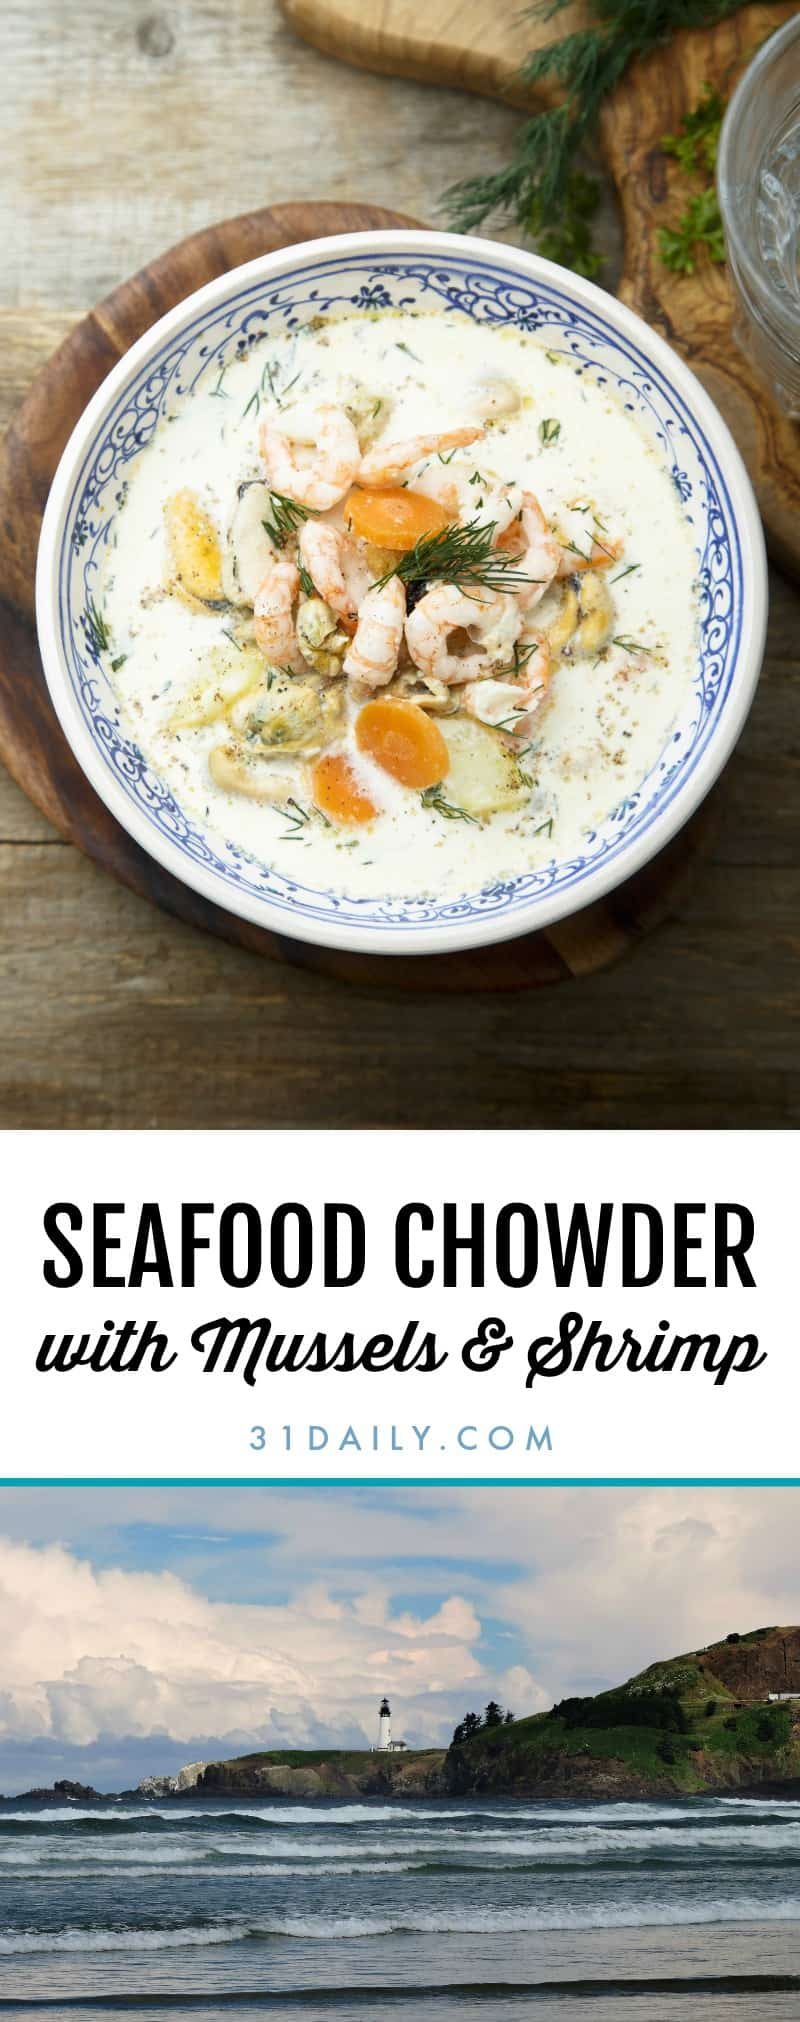 Seafood Chowder with Mussels and Shrimp | 31Daily.com